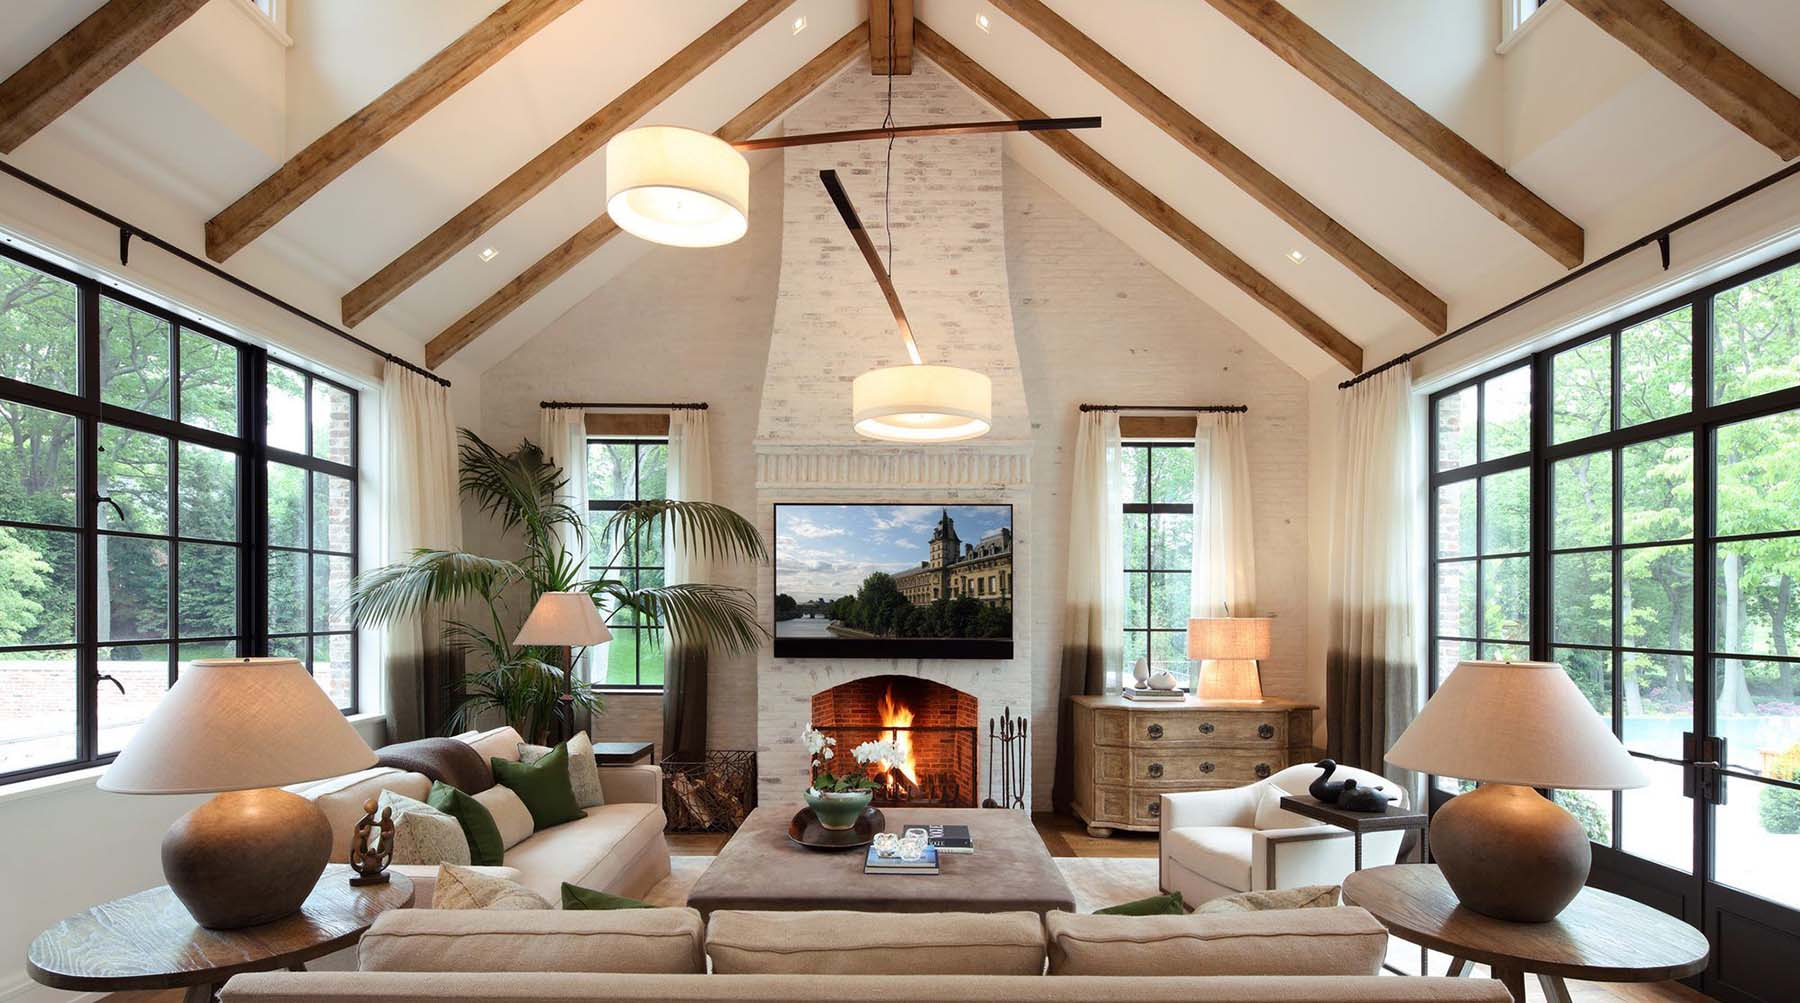 Red brick wall and fireplace surround painted white in a sunroom with vaulted ceilings.